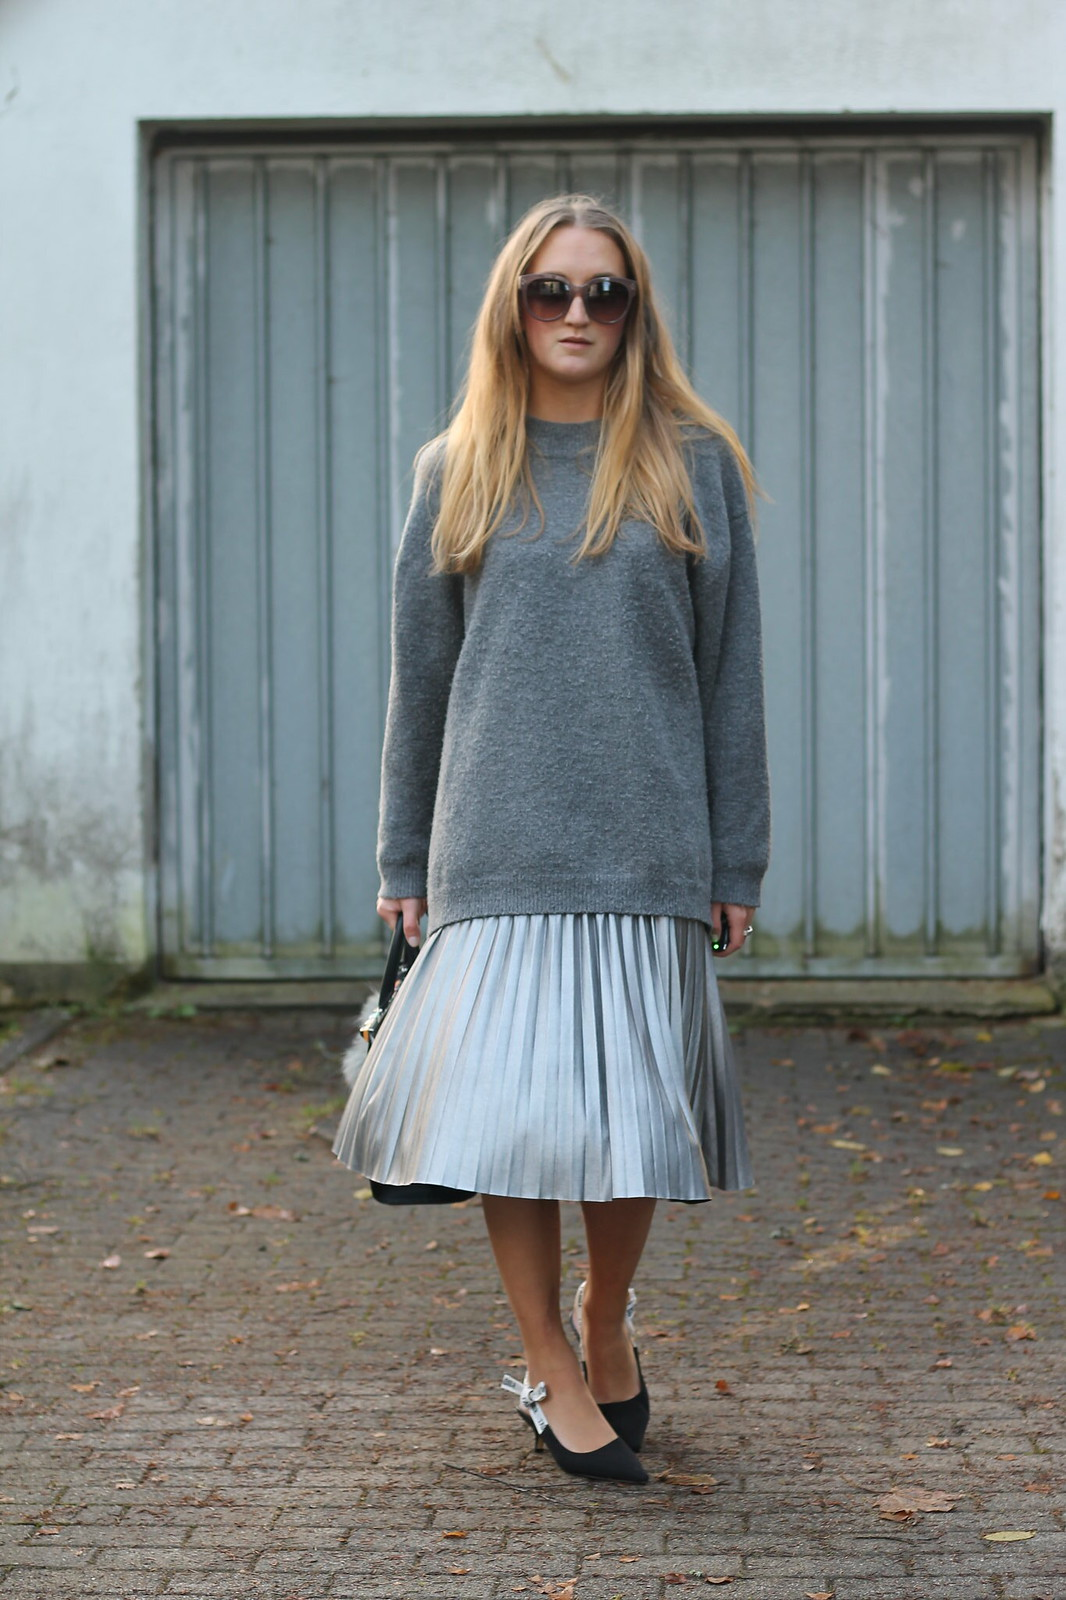 silver-skirt-and-sweater-whole-outfit-front-wiebkembg